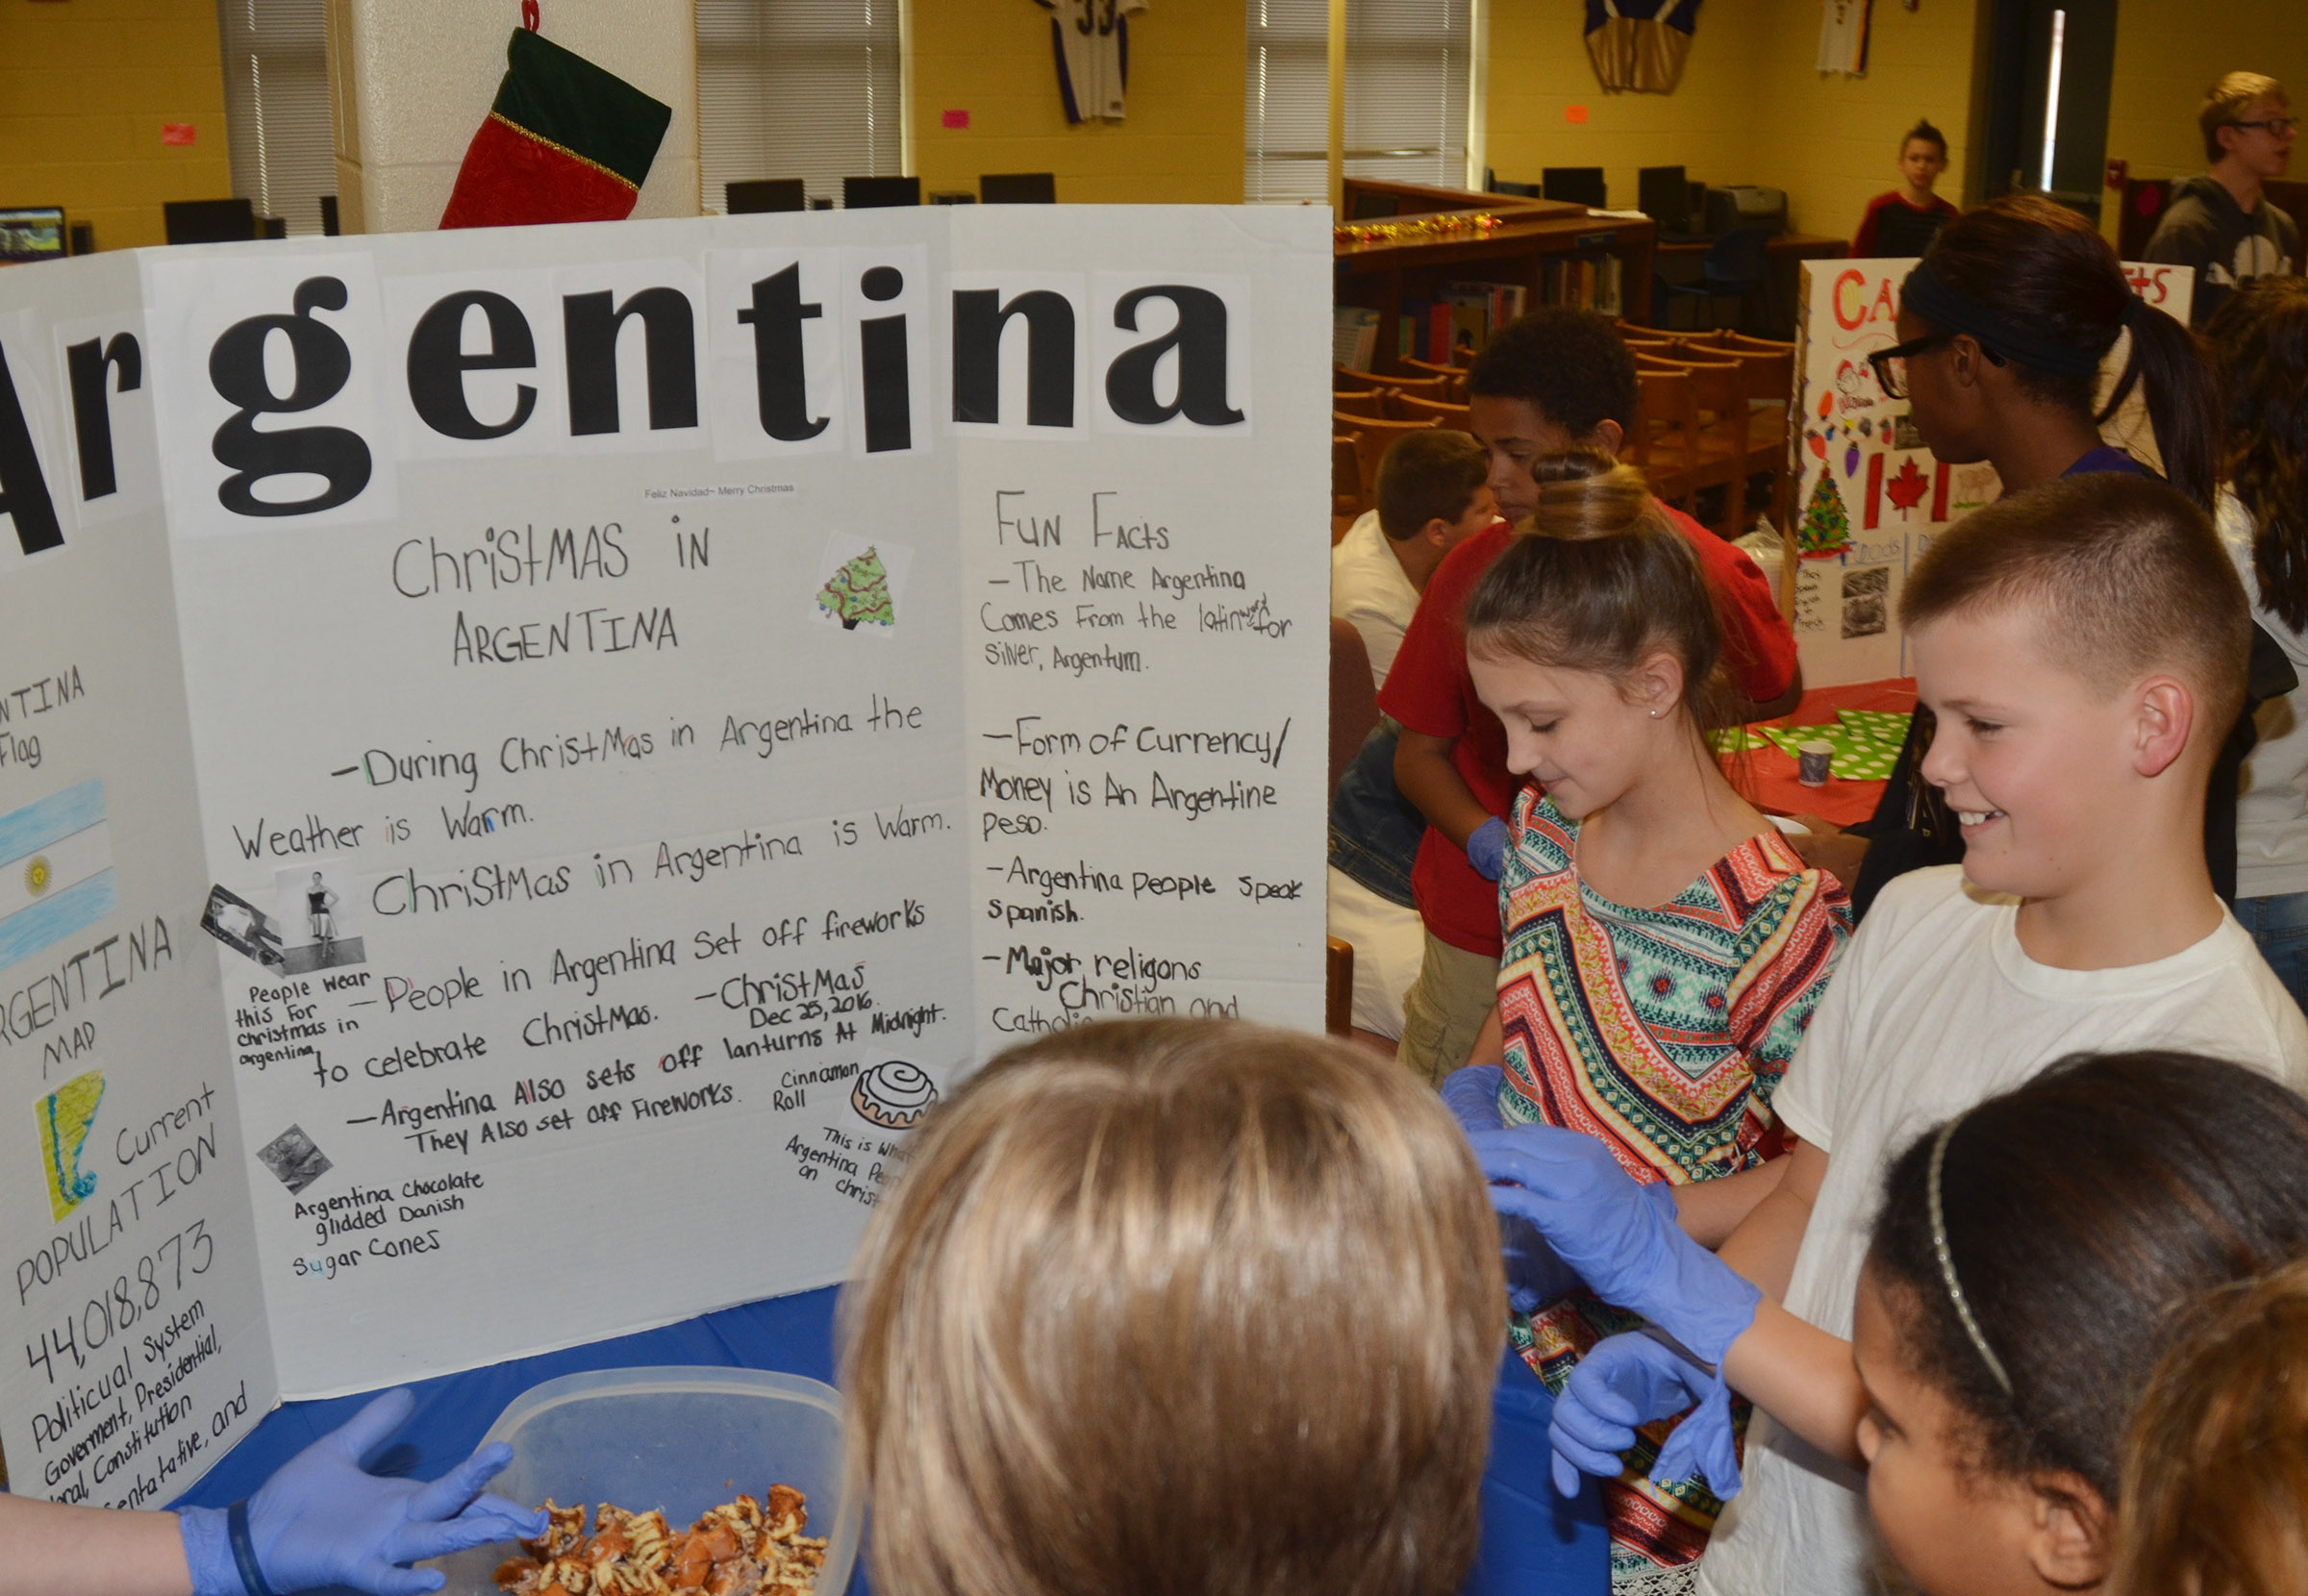 CMS students learn about Christmas traditions in Argentina.